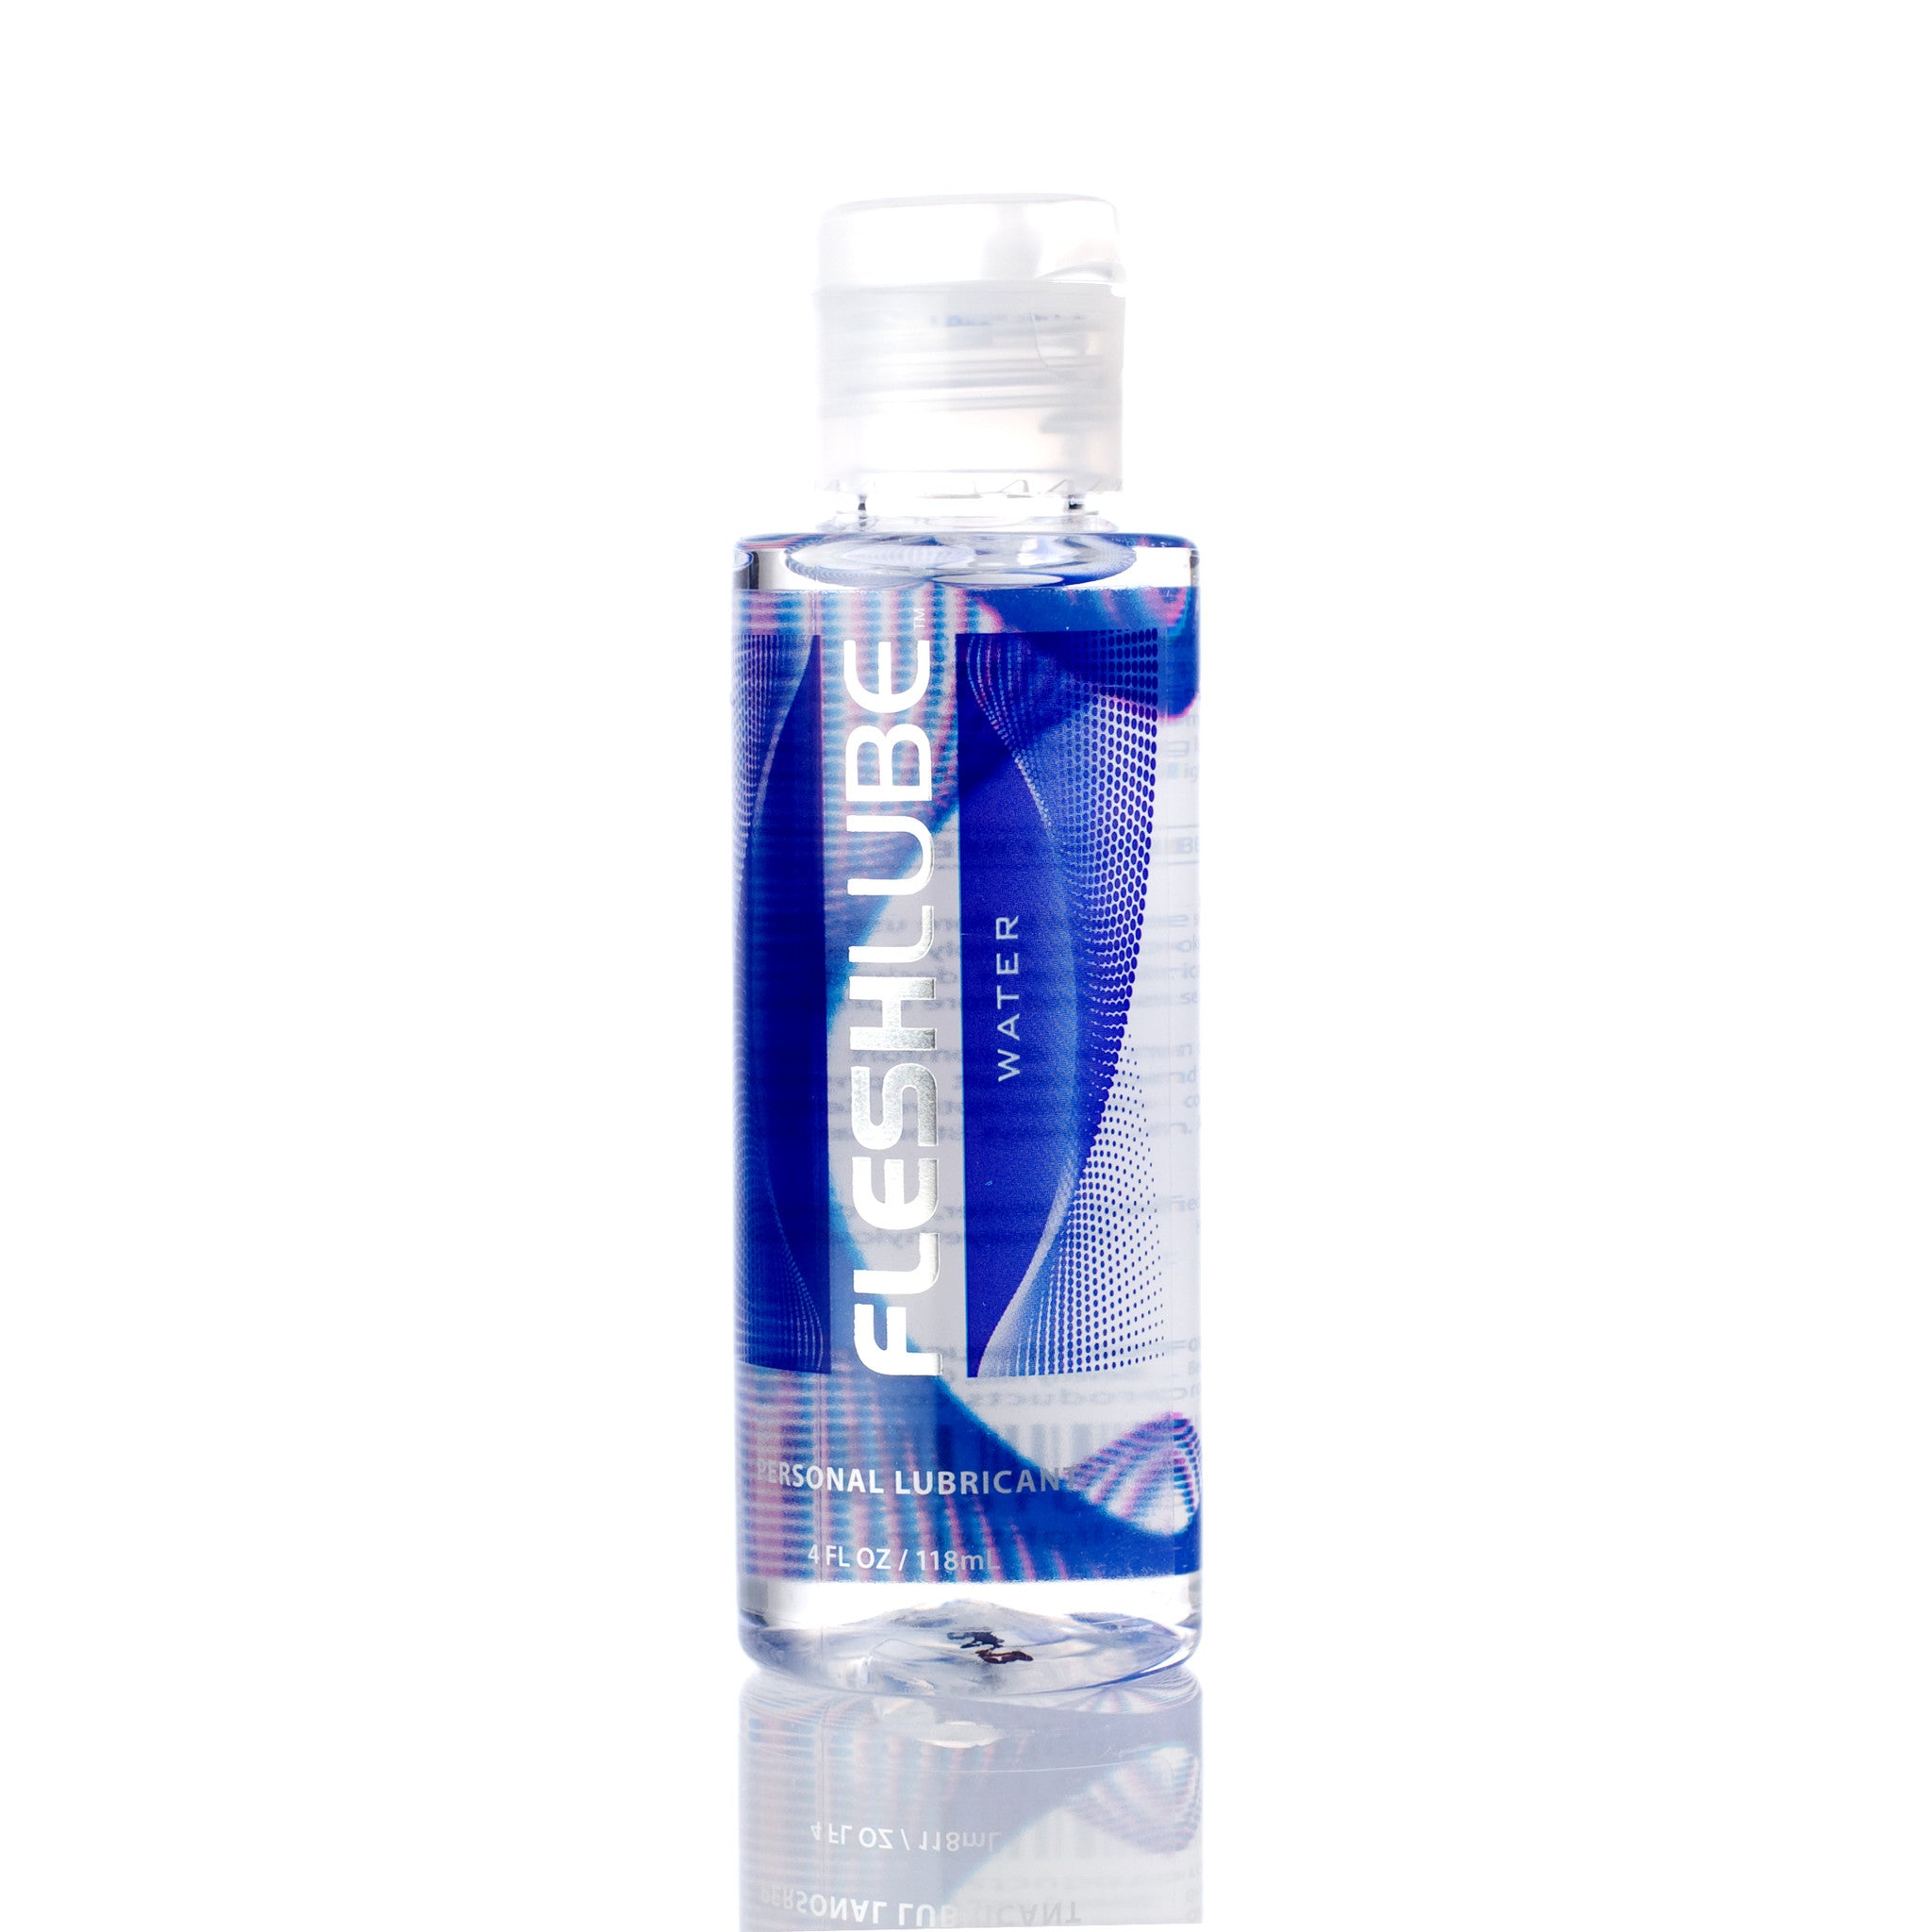 Fleshlube® Water 4 oz